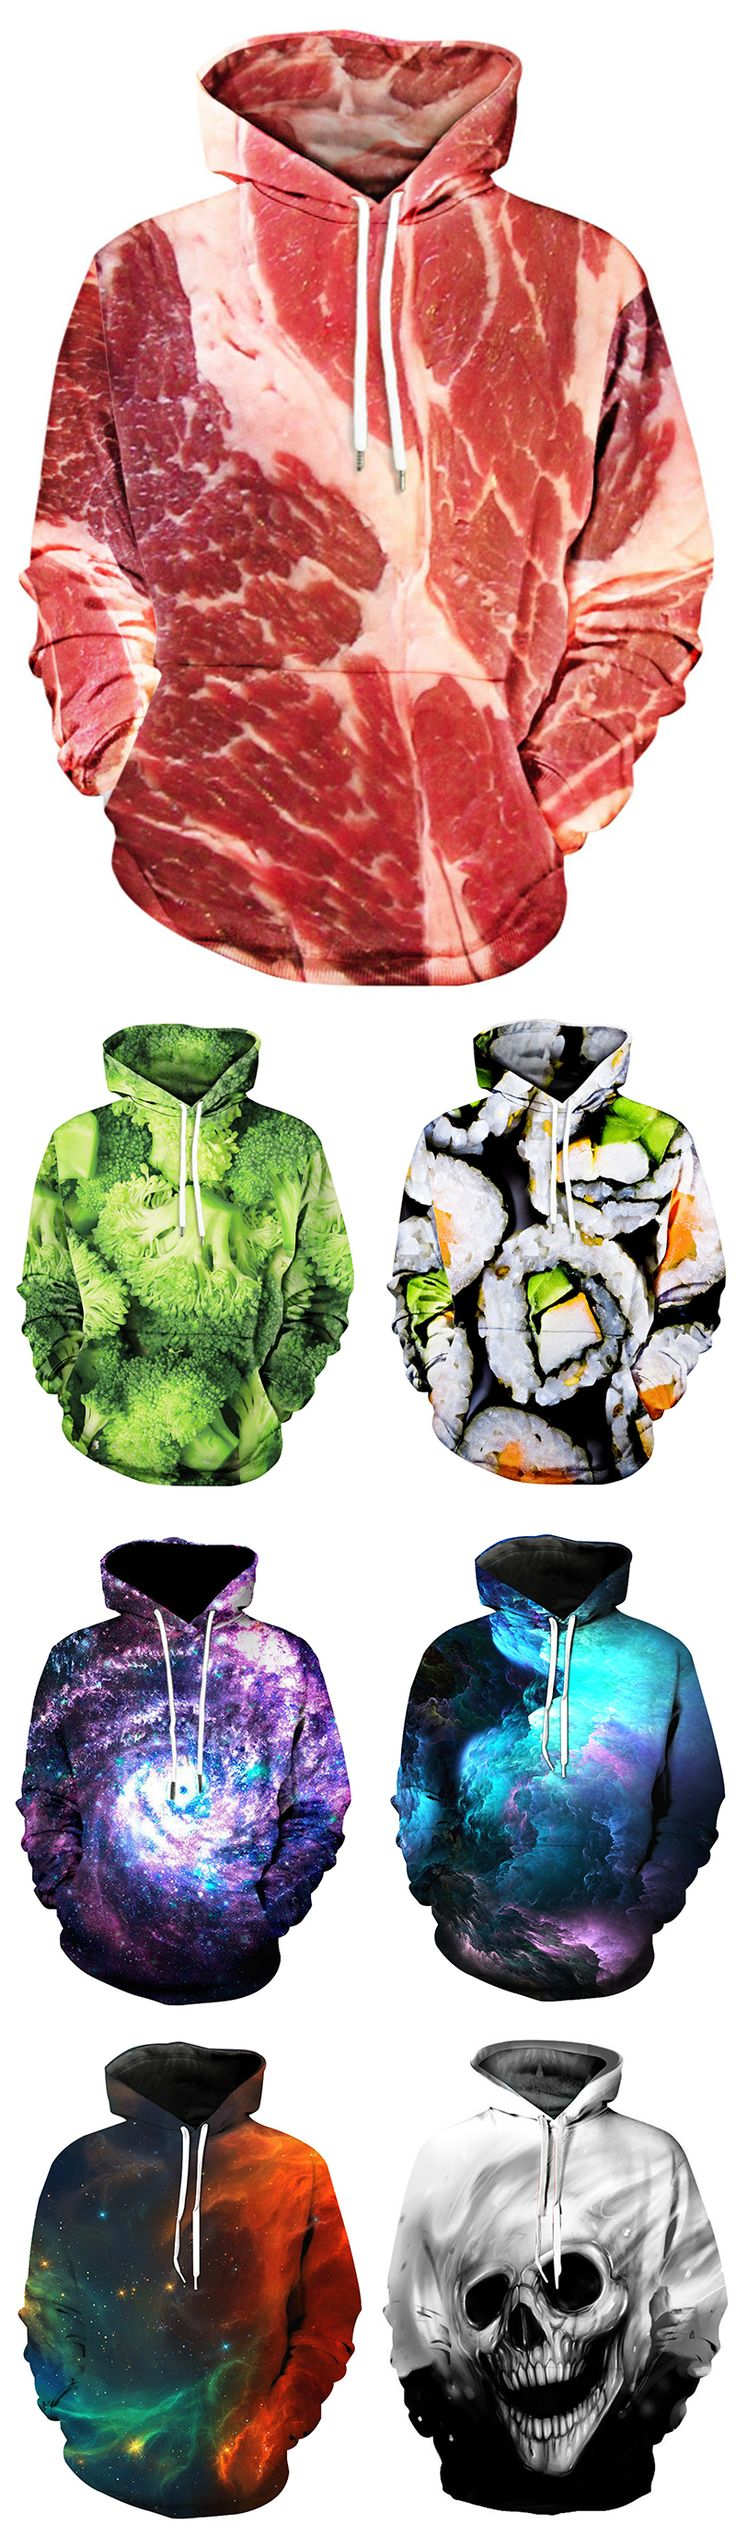 Up to 50% off + Free Shipping | 2018 New Arrivals | Men's 3D Print Hoodies | #menswear #mensfashion #hoodie